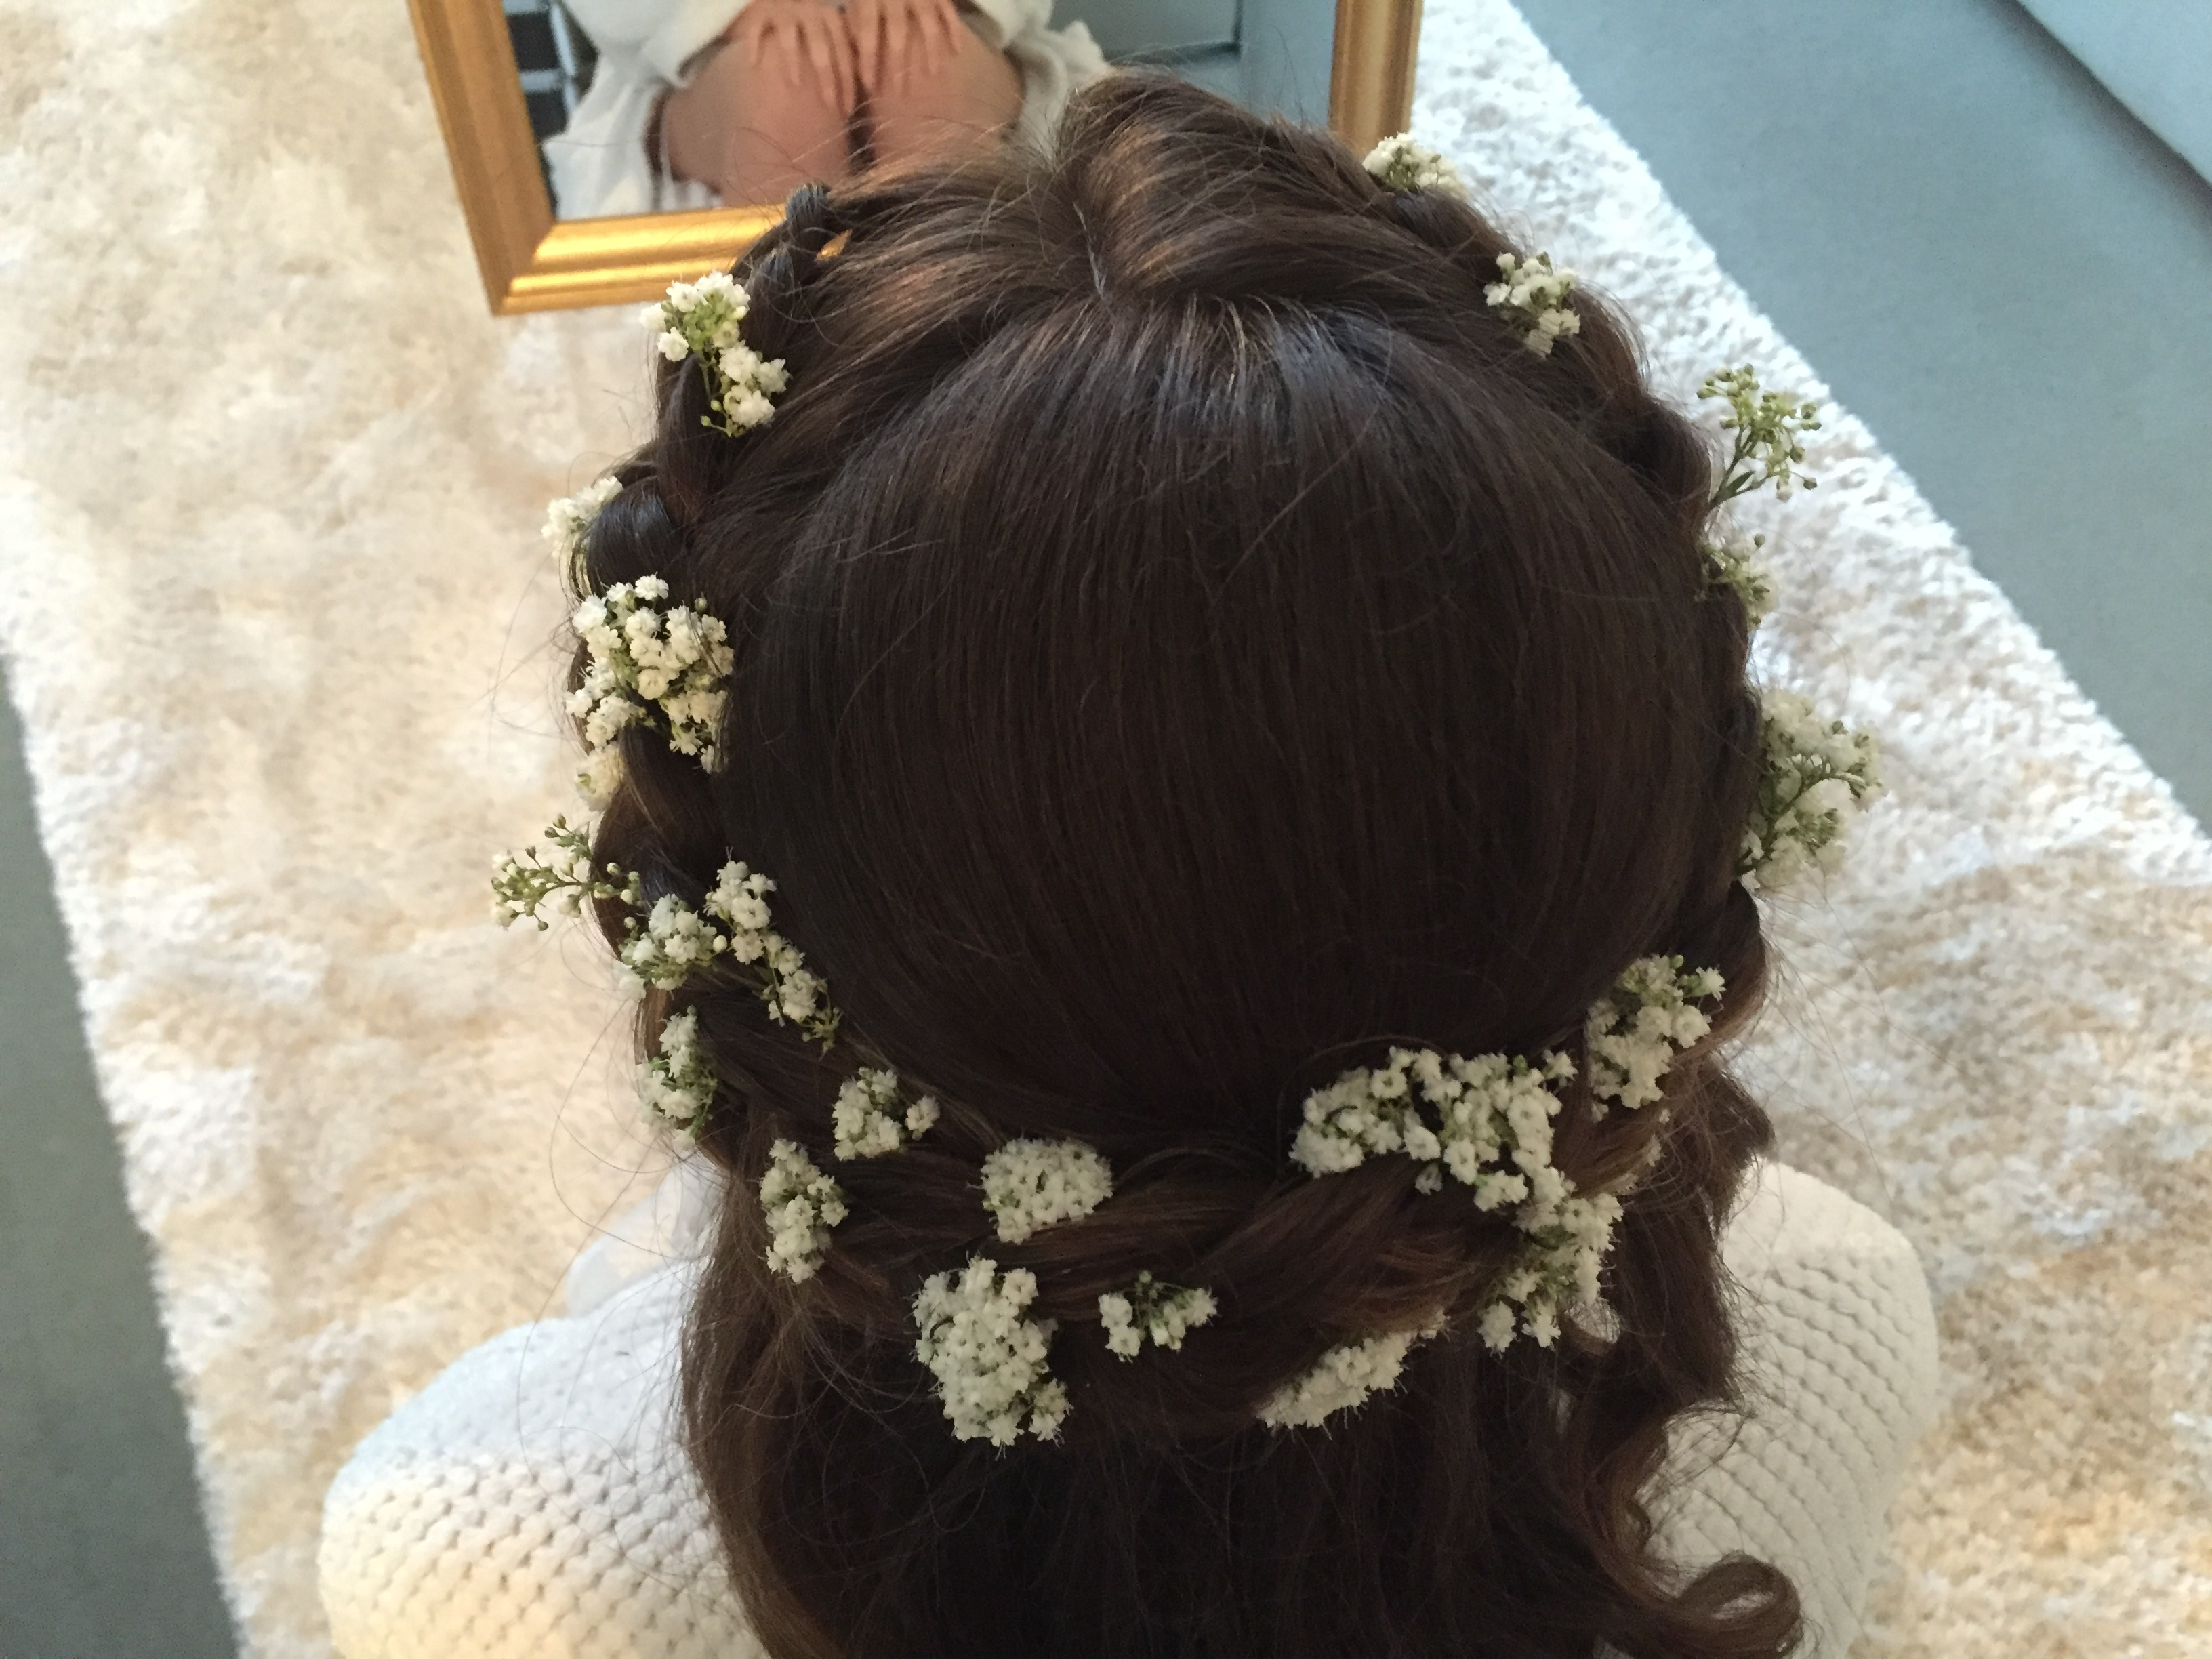 brunette bridesmaid hair with flower crown for a wedding in solihull, West Midlands